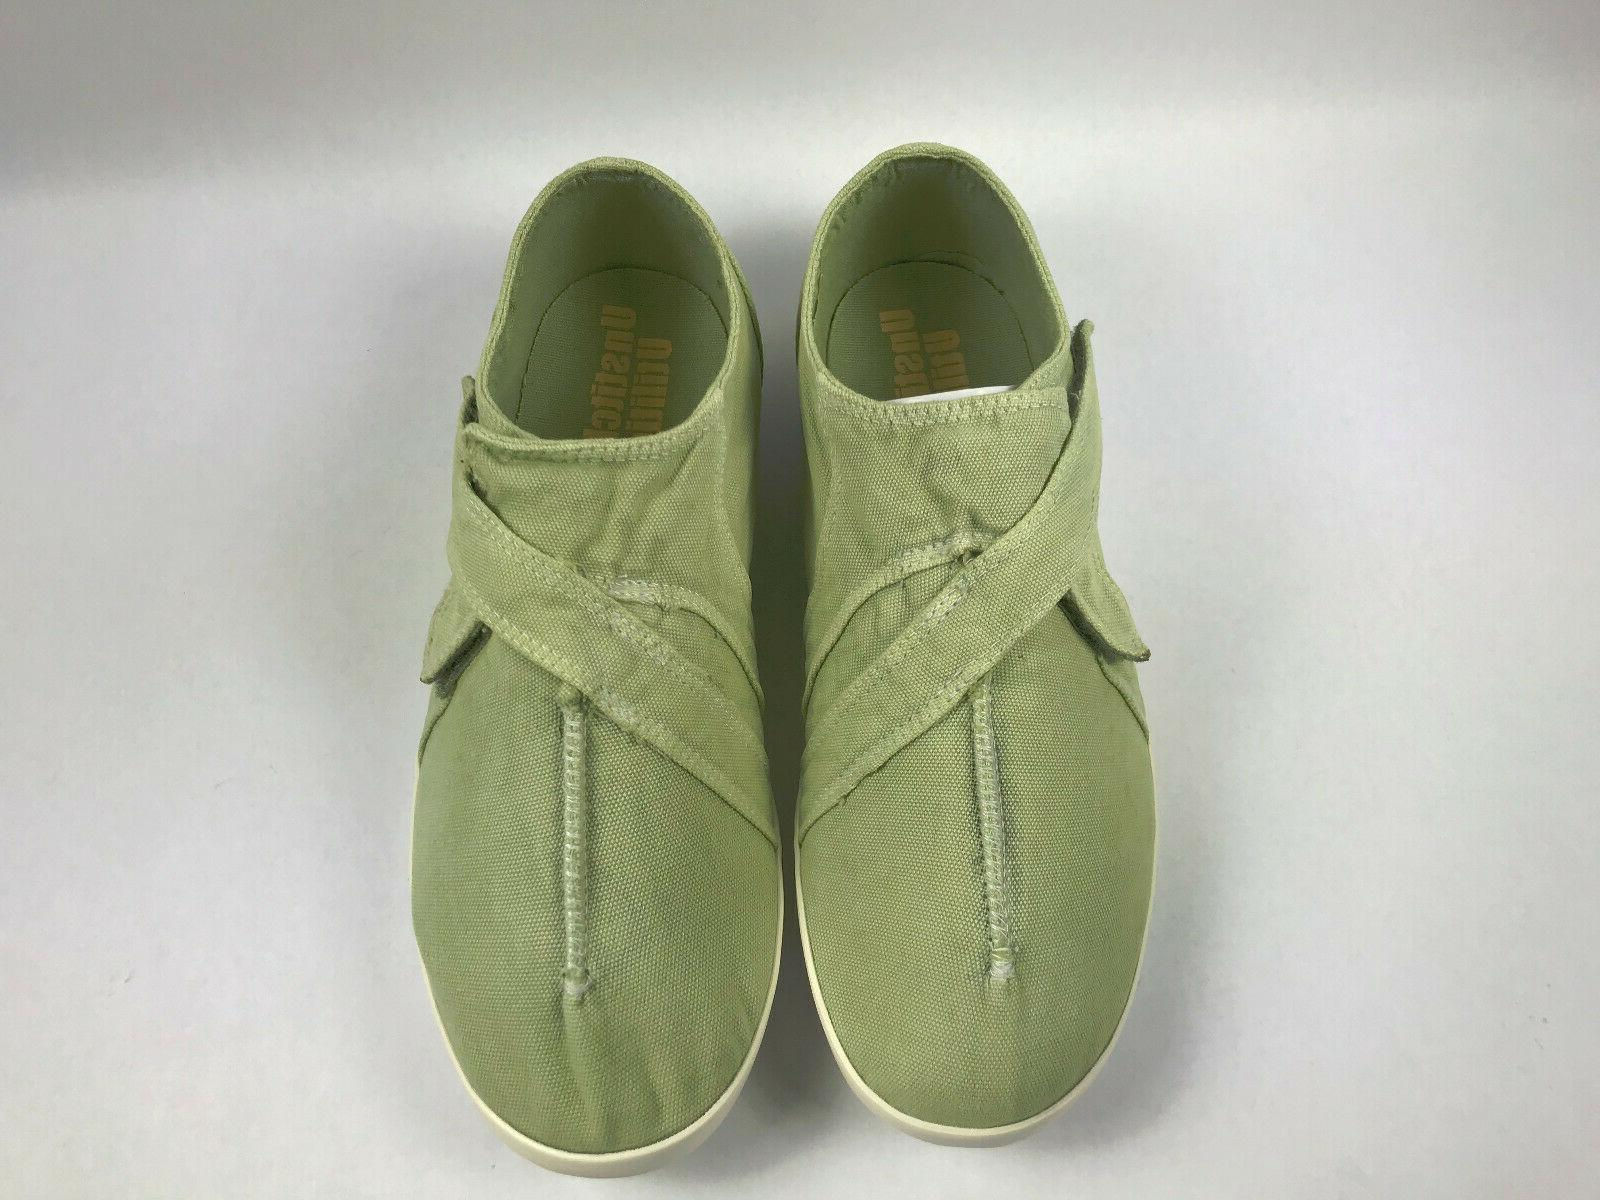 **NEW** Unstitched Canvas Shoes.Triple Washed Canvas Look!